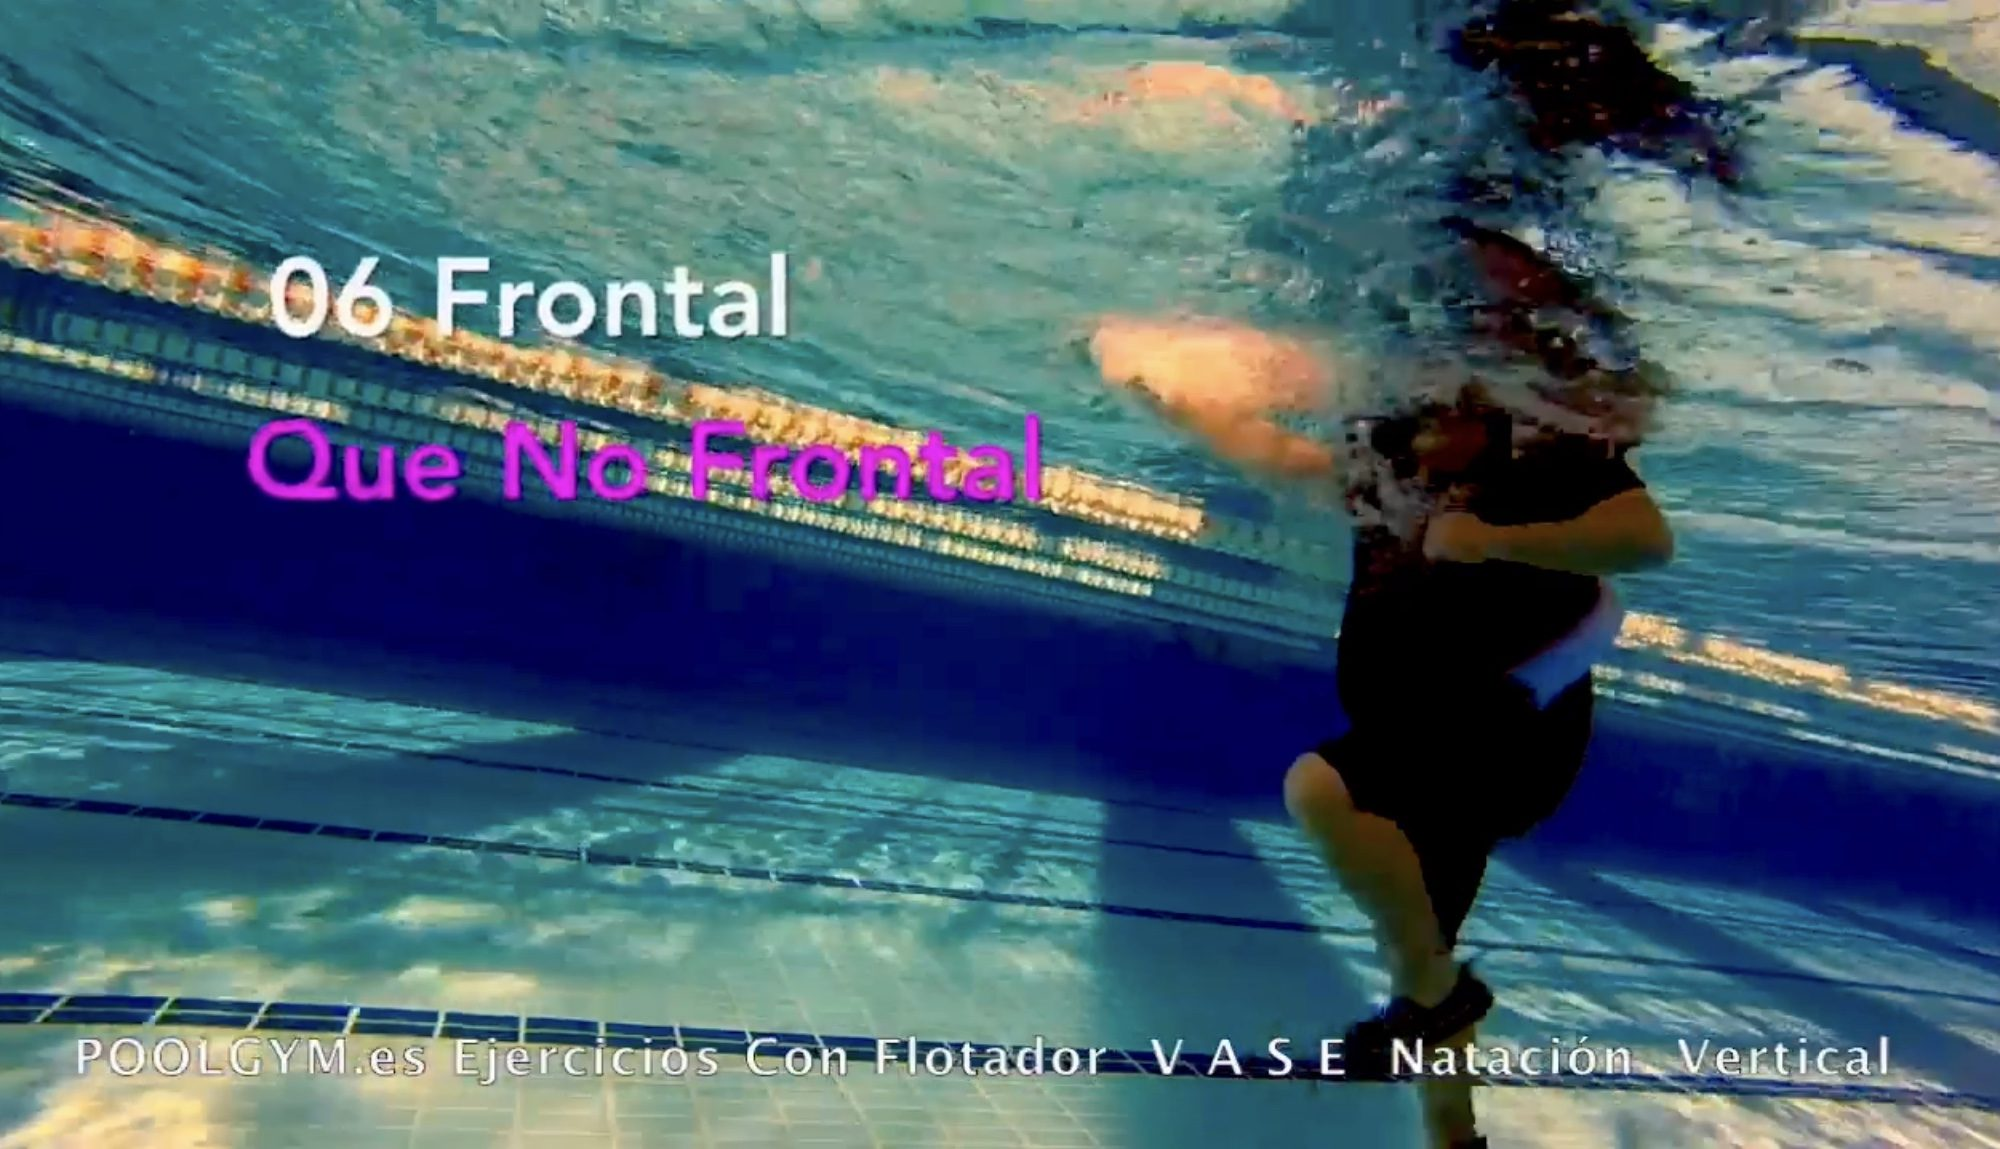 06 Frontal QUE NO poolgym.ES